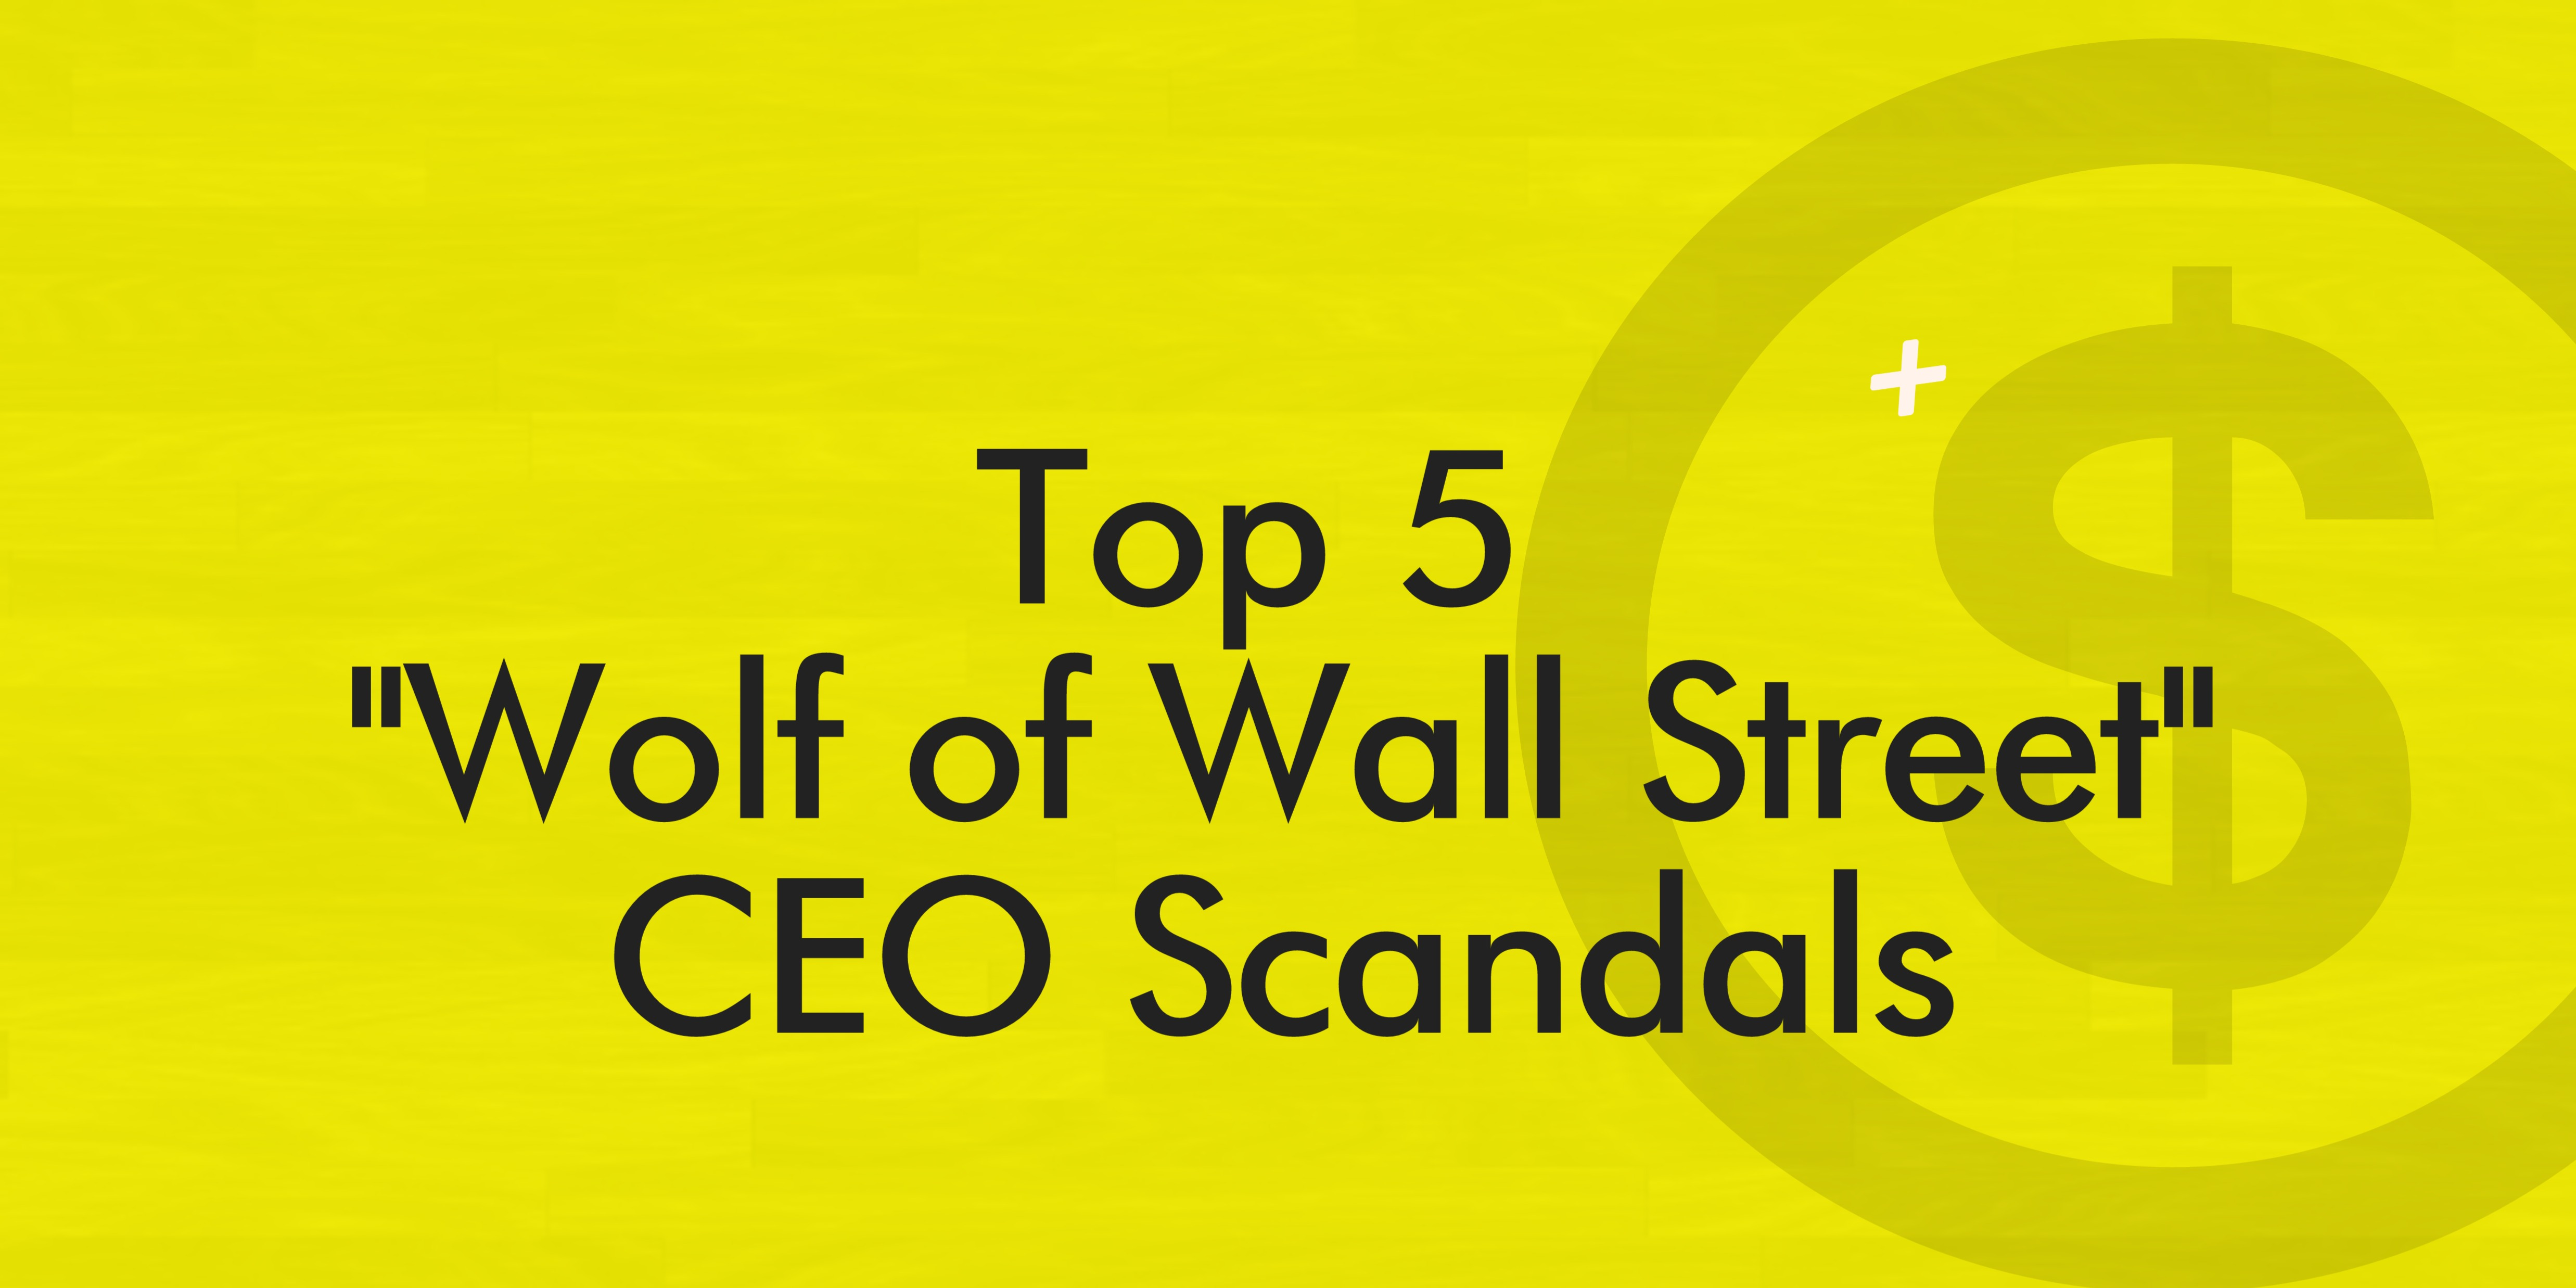 Top CEO Scandals